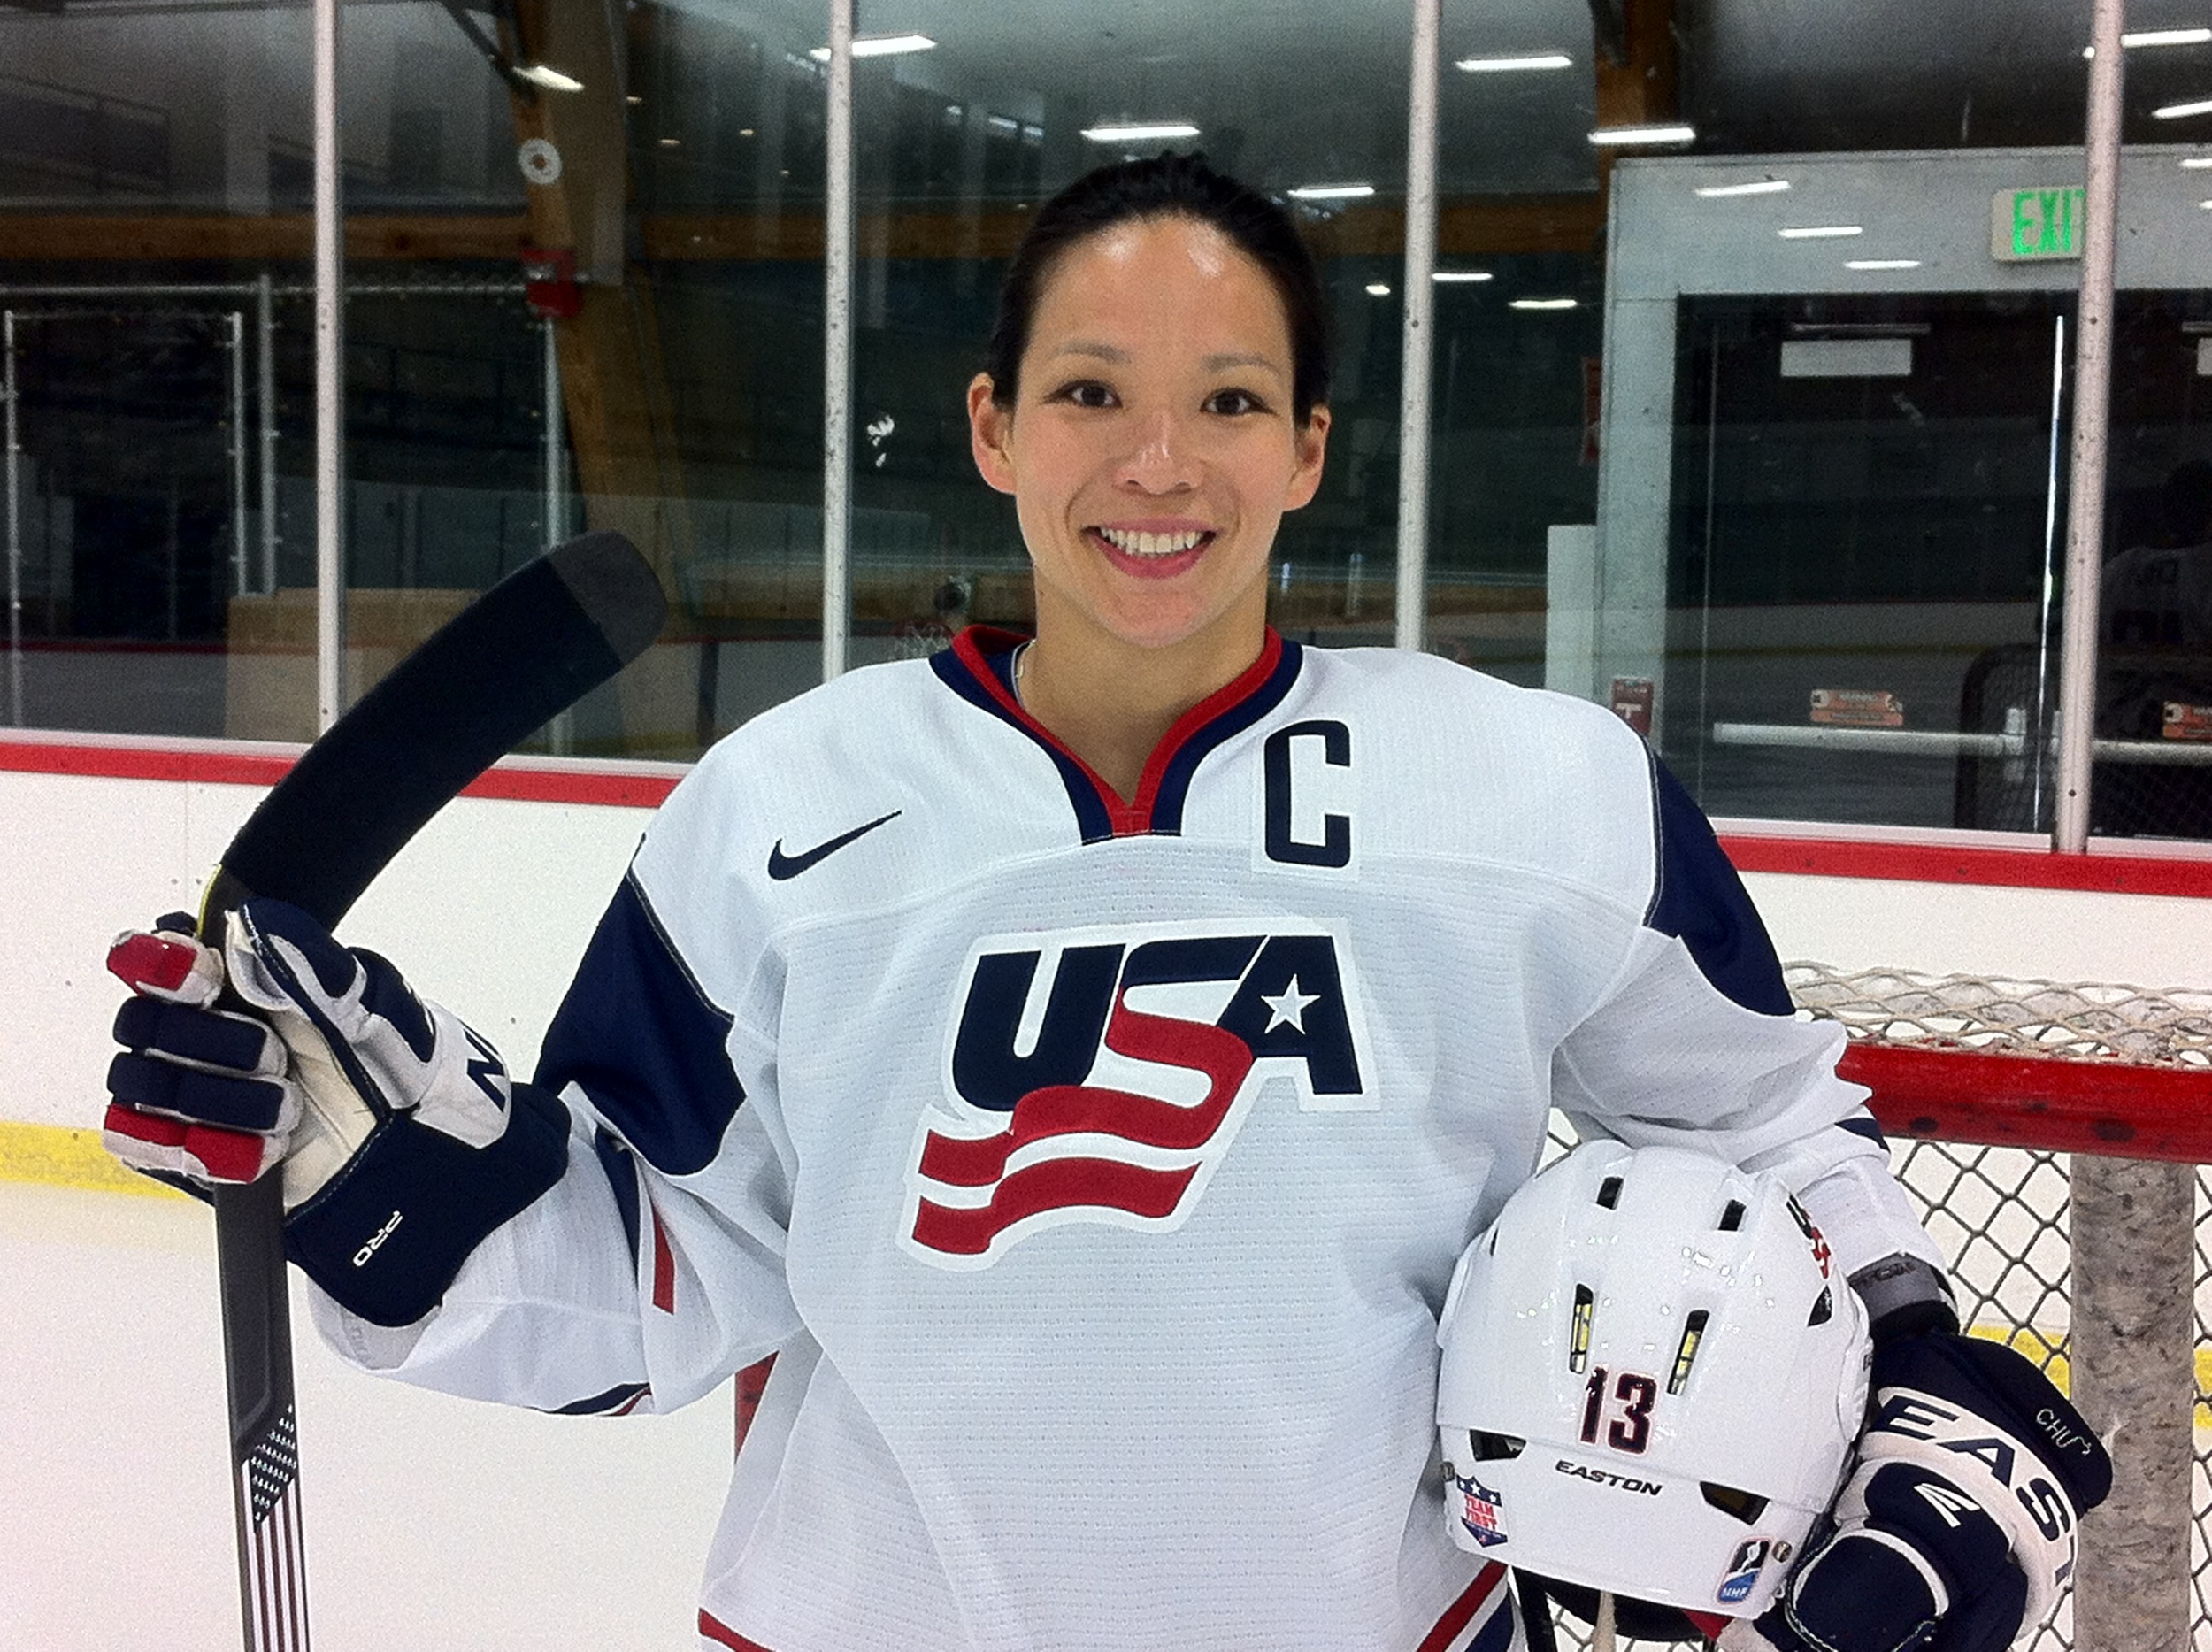 Julie was the Captain of the US Women's National Team from Fall 2011 until Fall of 2013.